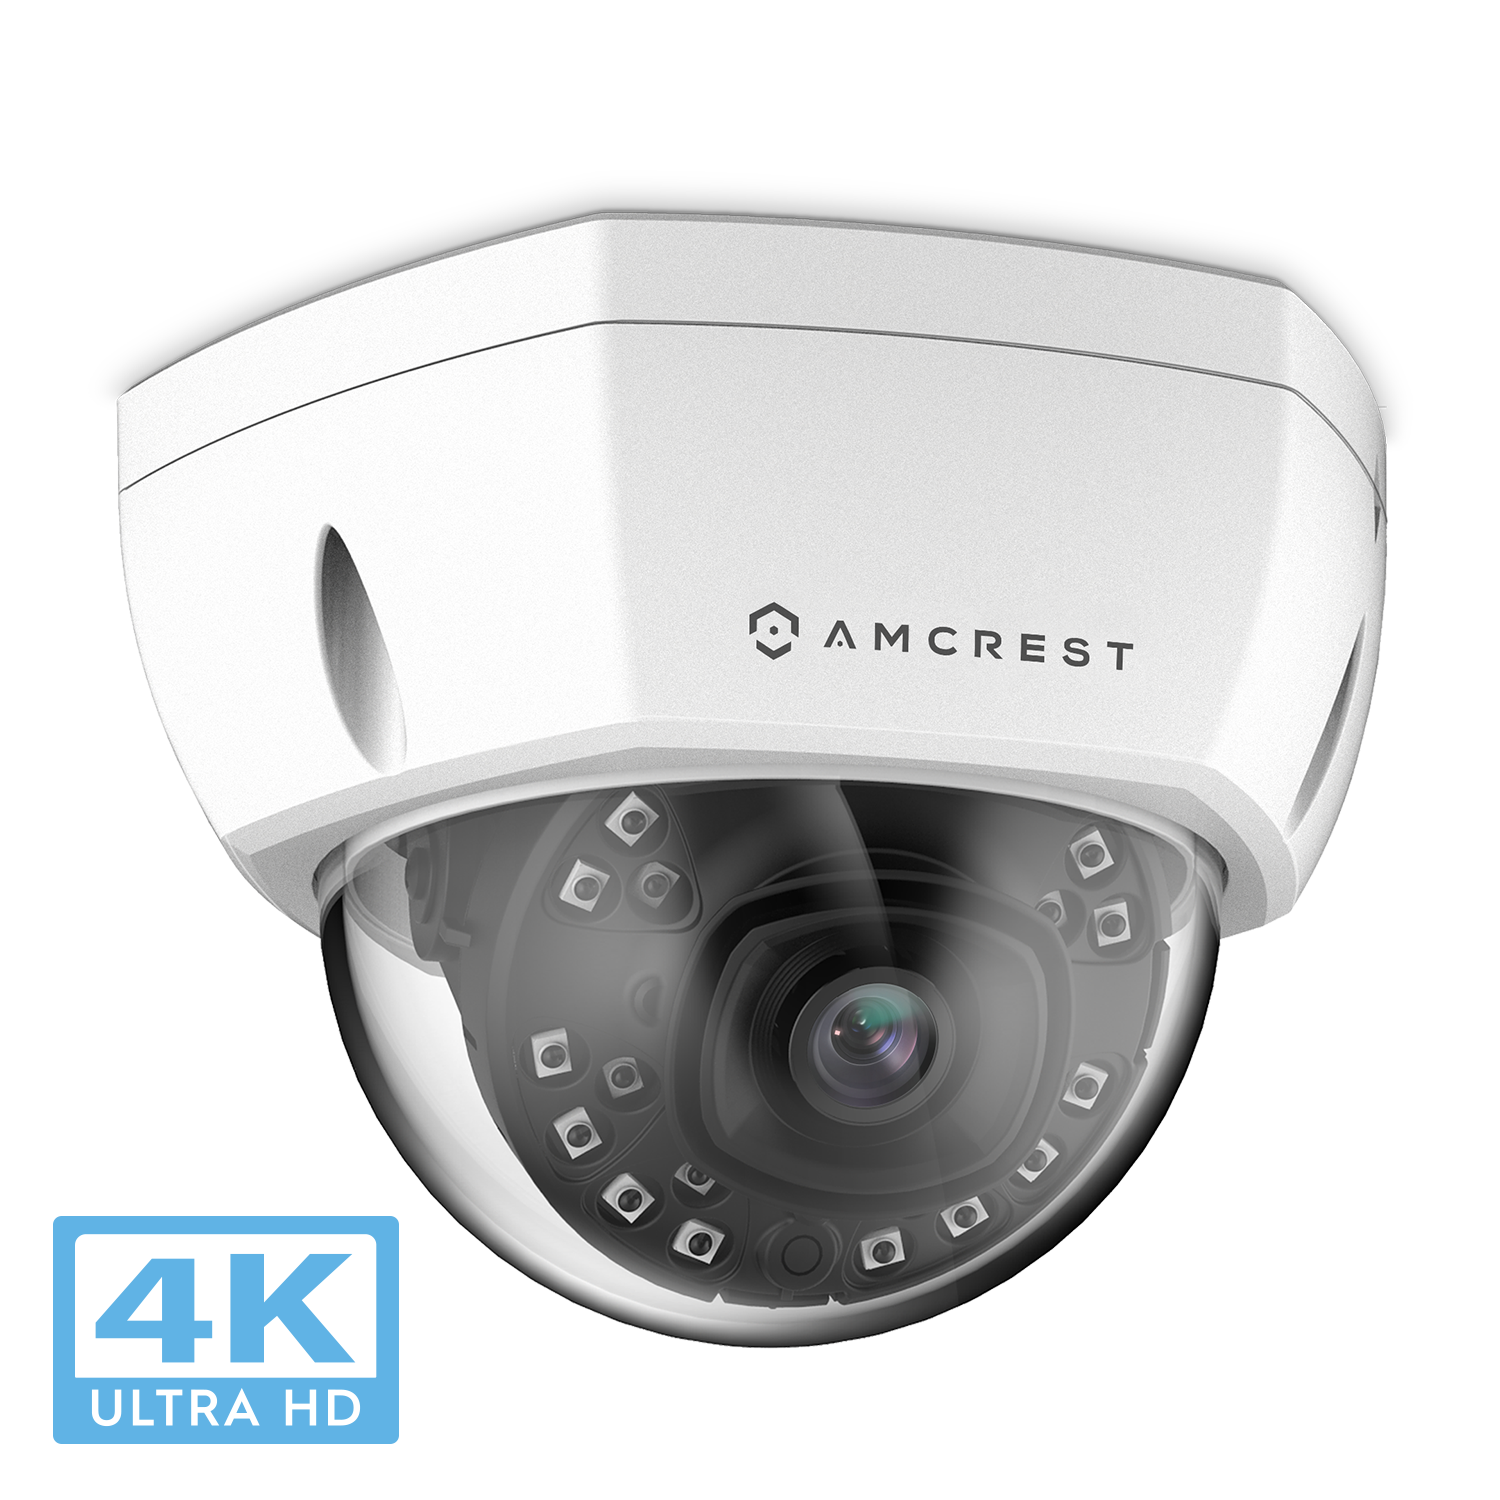 Amcrest UltraHD 4K (8MP) Outdoor Security POE IP Camera, 3840x2160, 98ft NightVision, 2.8mm Lens, IP67 Weatherproof, IK10 Vandal Resistant Dome, MicroSD Recording, White